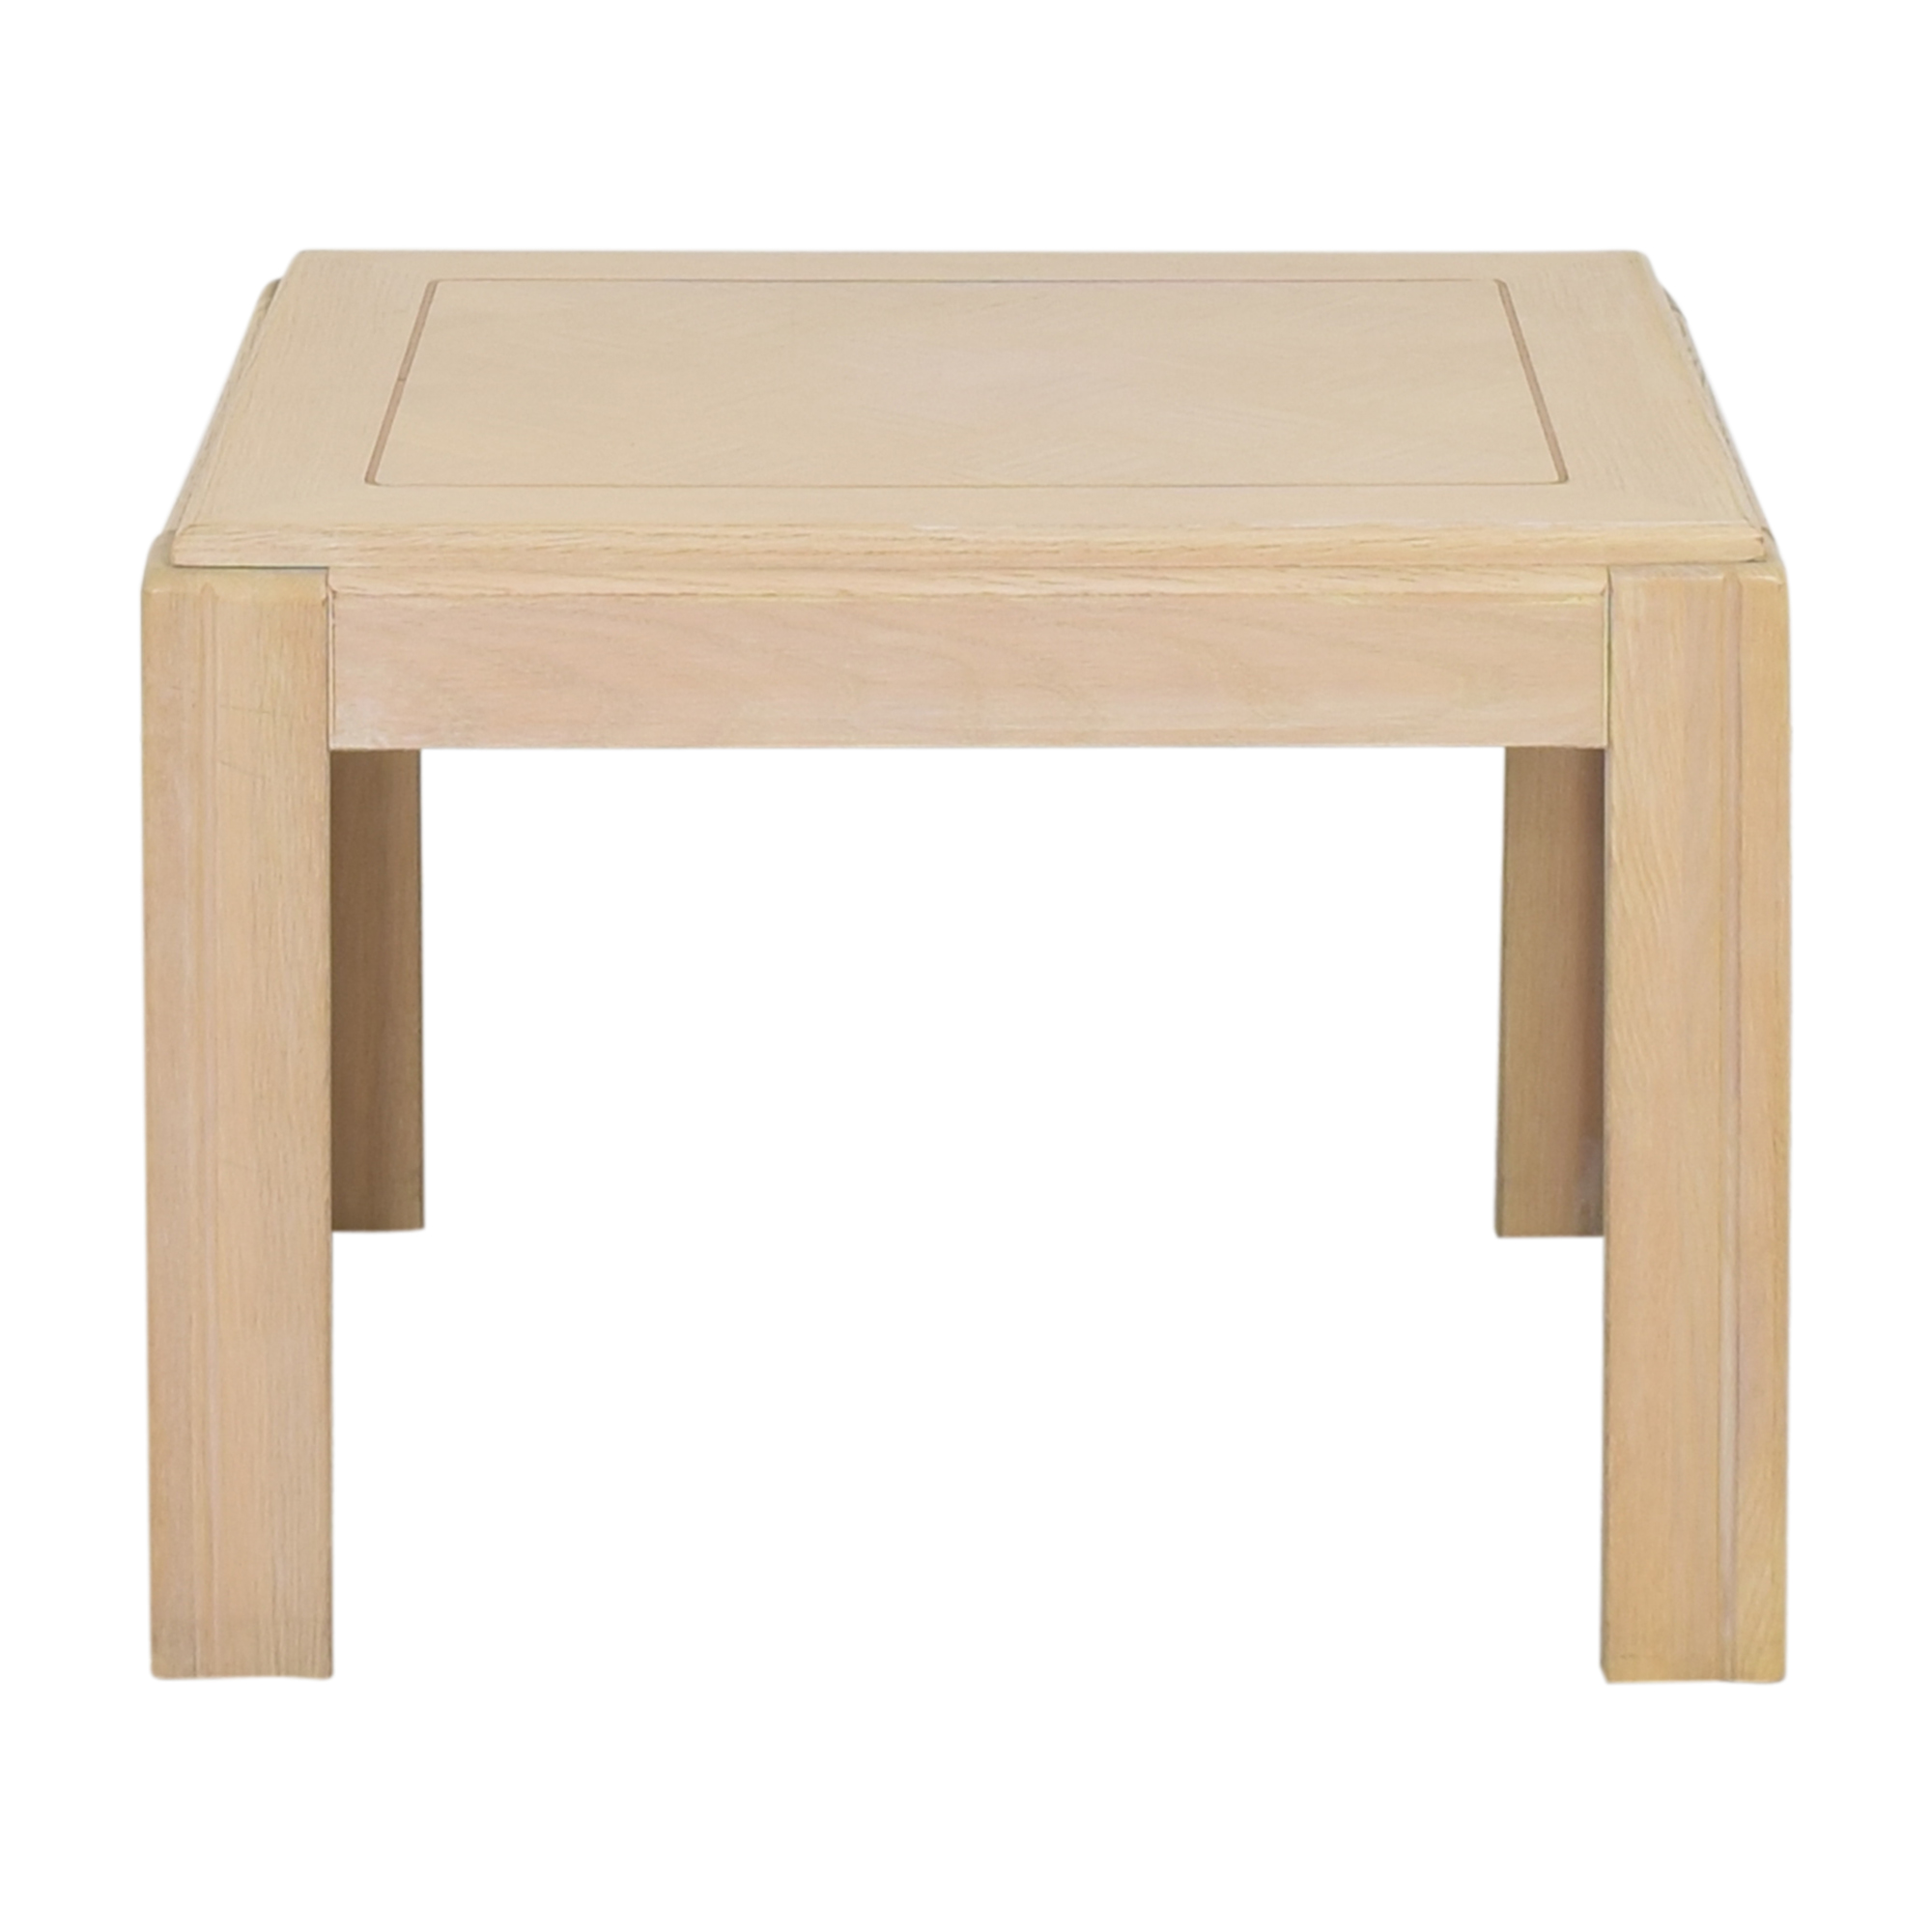 Rectangular End Table ma